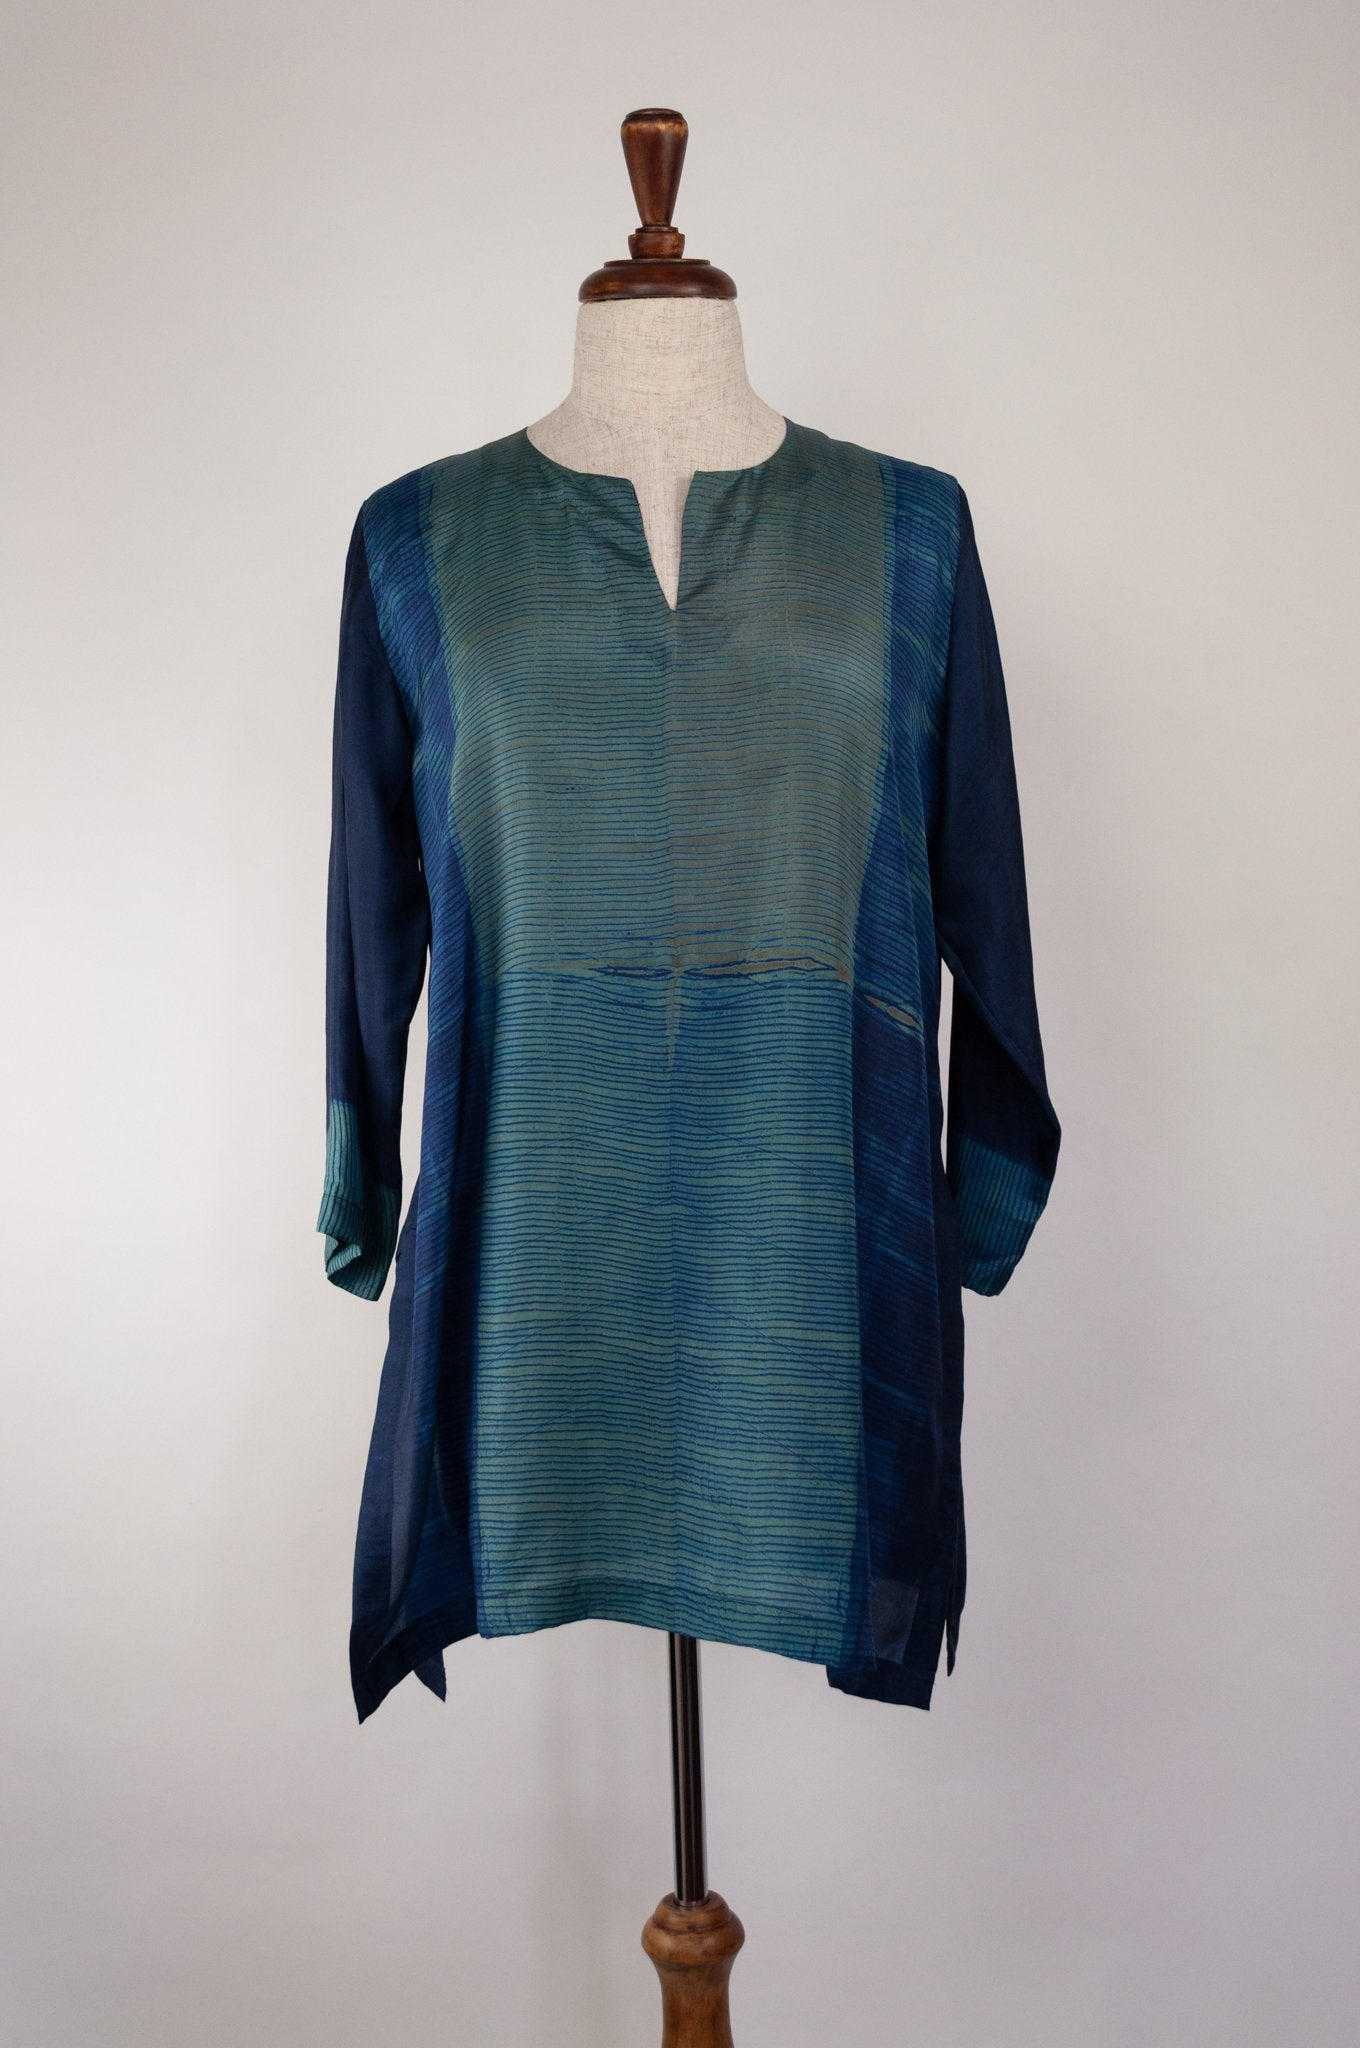 Pure silk shibori dyed kurta top with an indigo base and highlights in brighter blues and deep sage